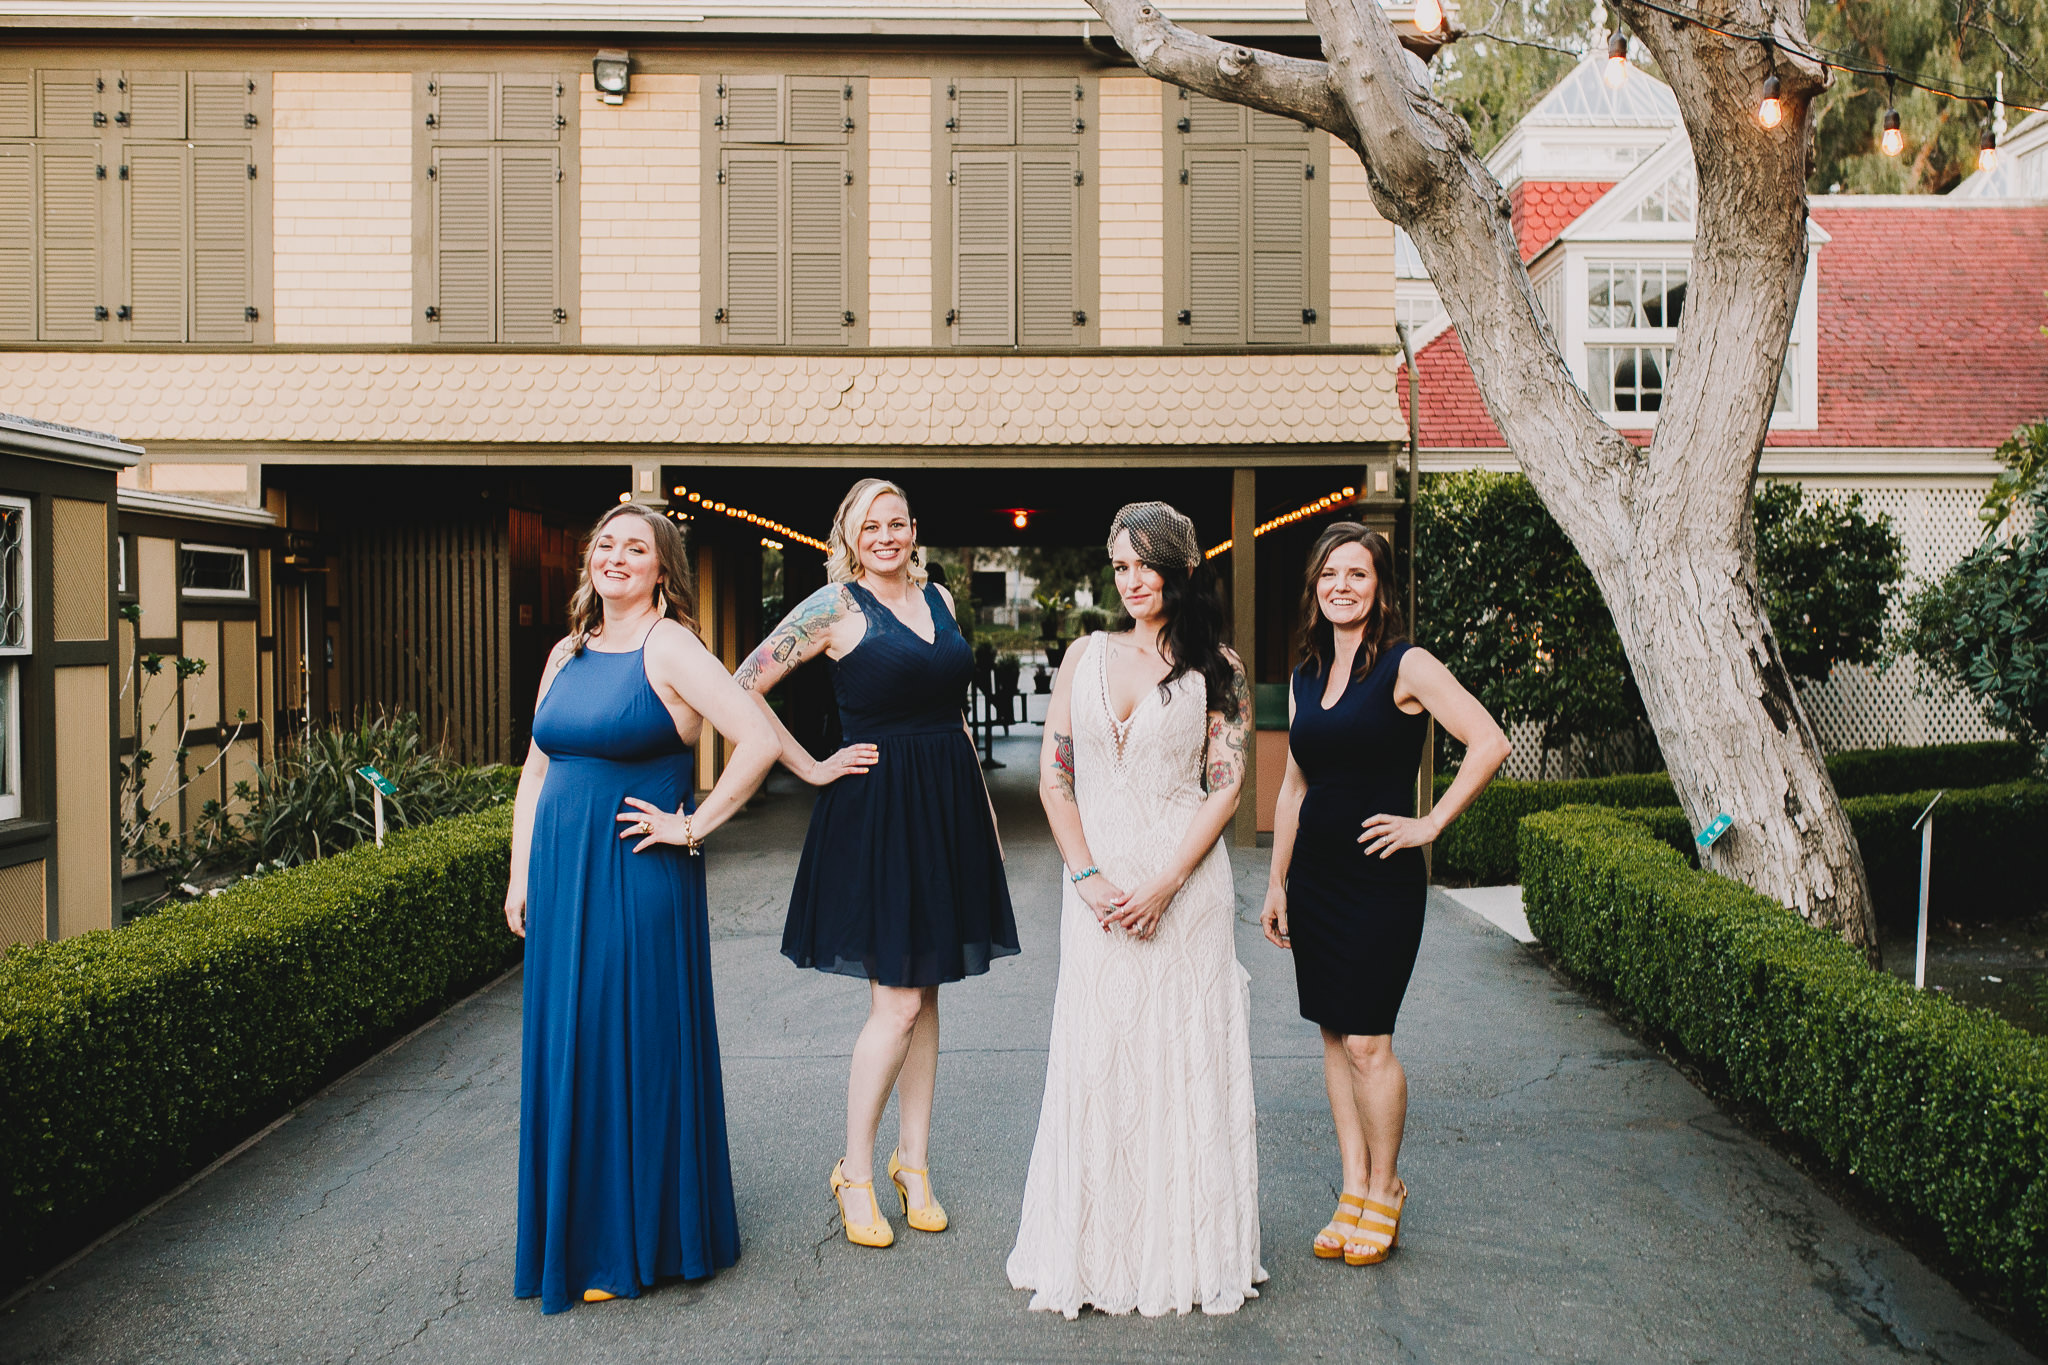 Archer Inspired Photography Sara and Aaron Winchester Mystery House NorCal San Jose California Wedding Photographer-484.jpg